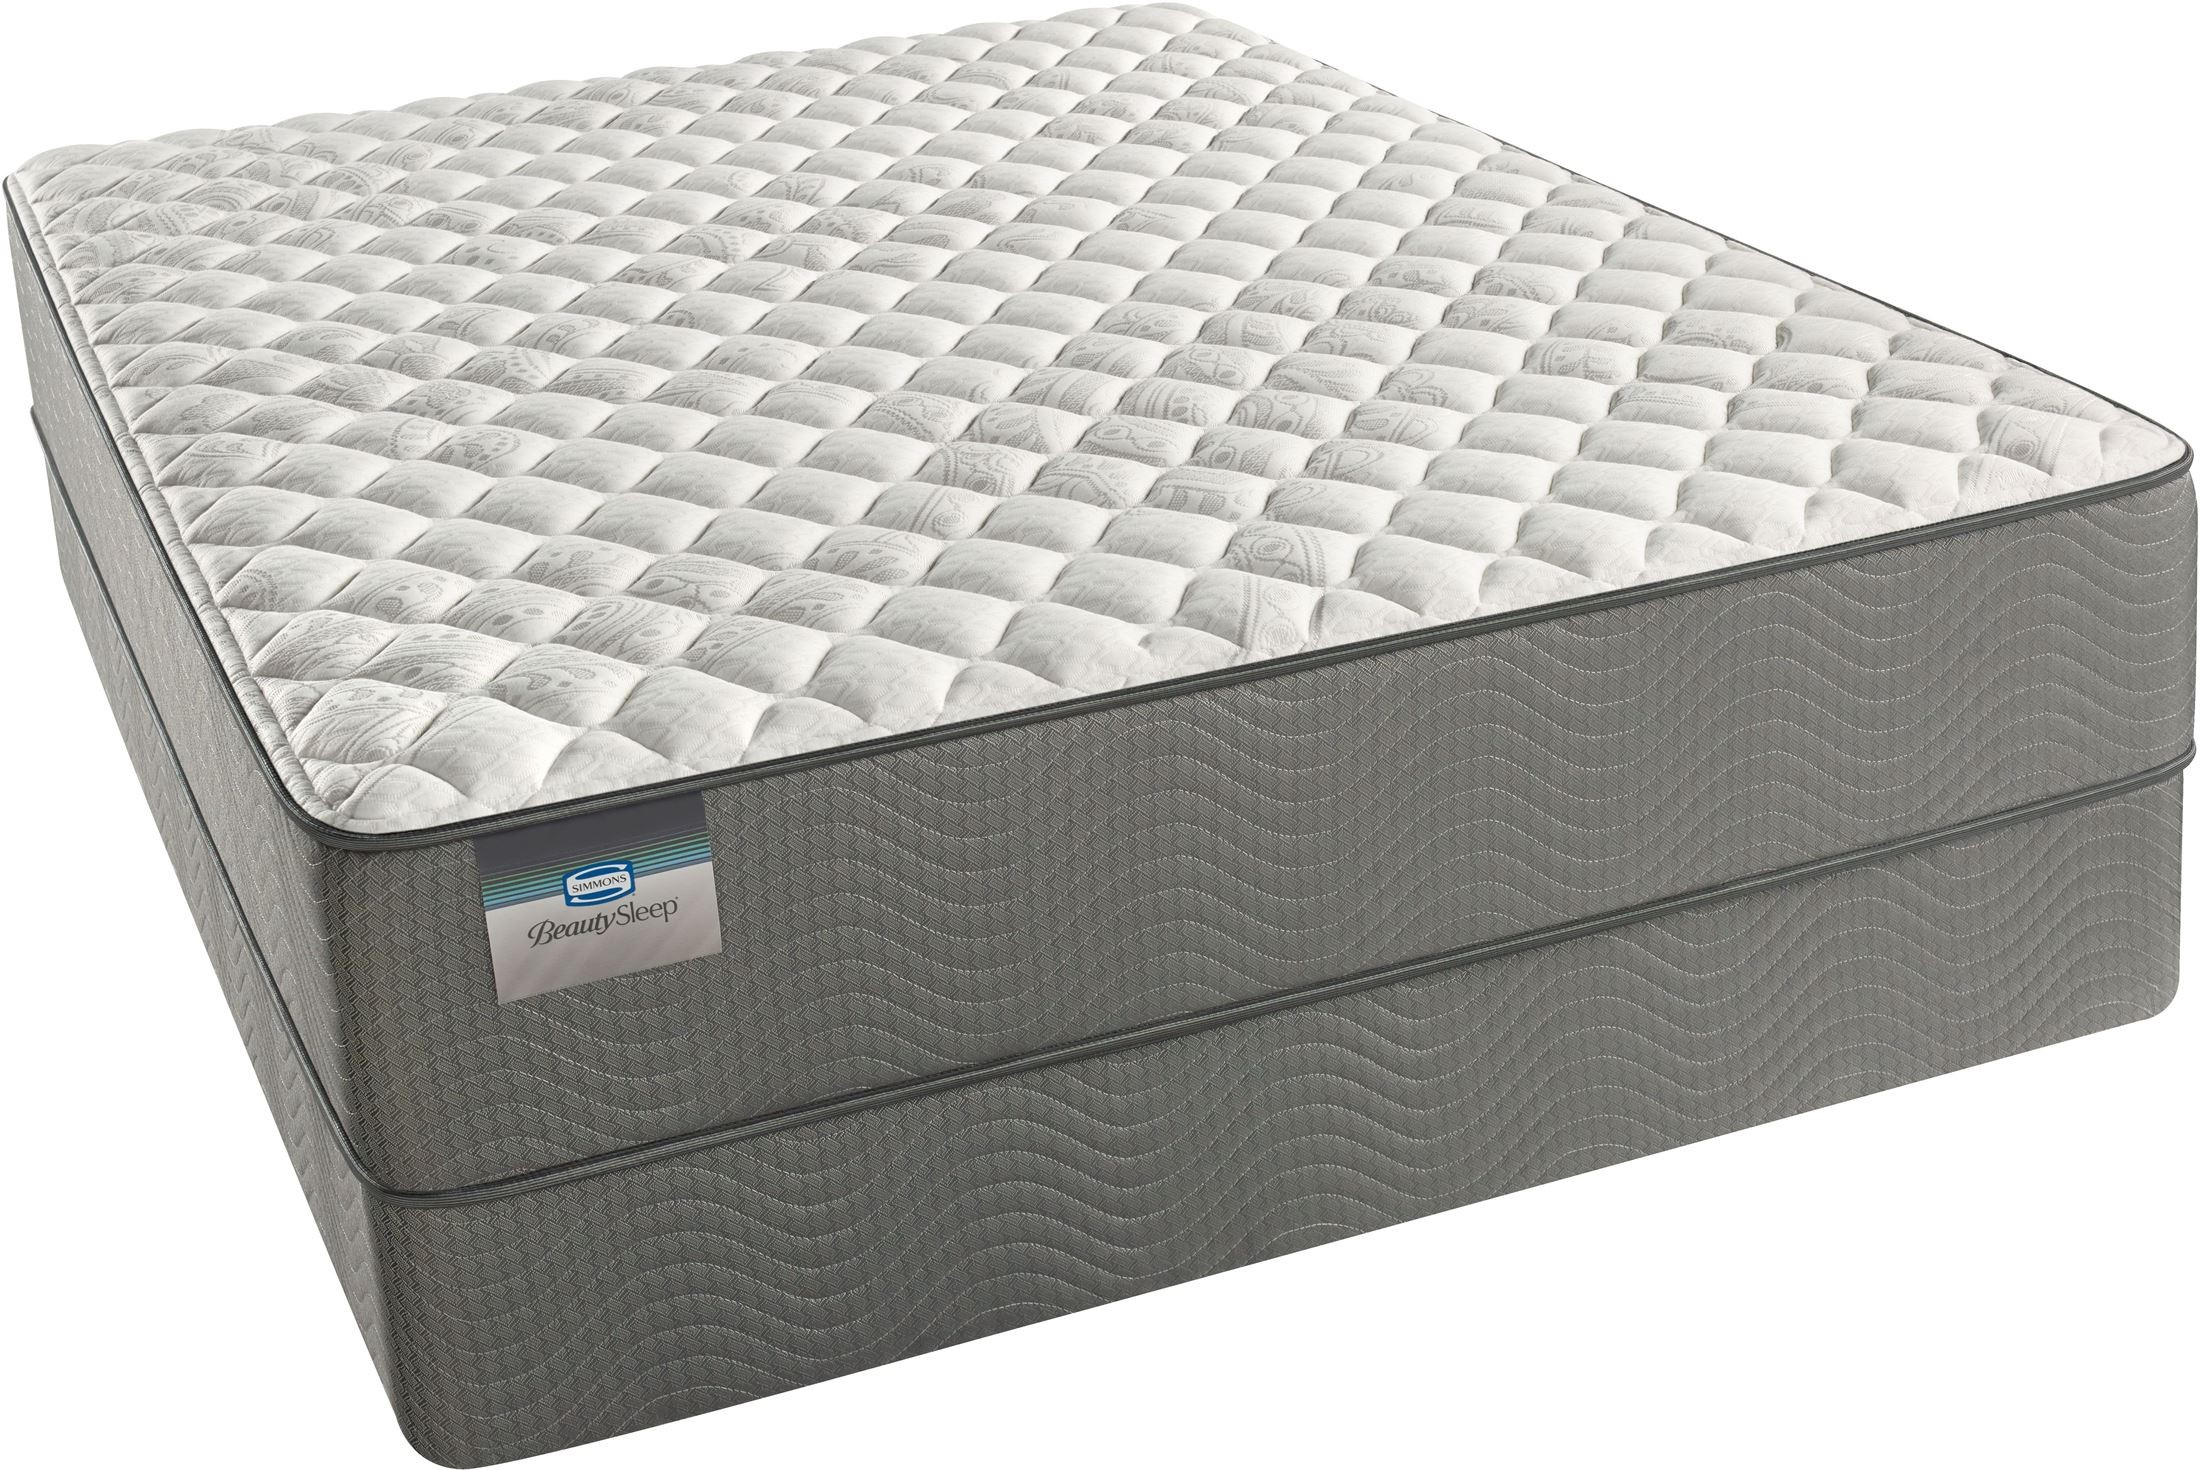 Beautysleep Alexander Heights Tight Top Firm Twin Xl Size Mattress With Foundation From Simmons